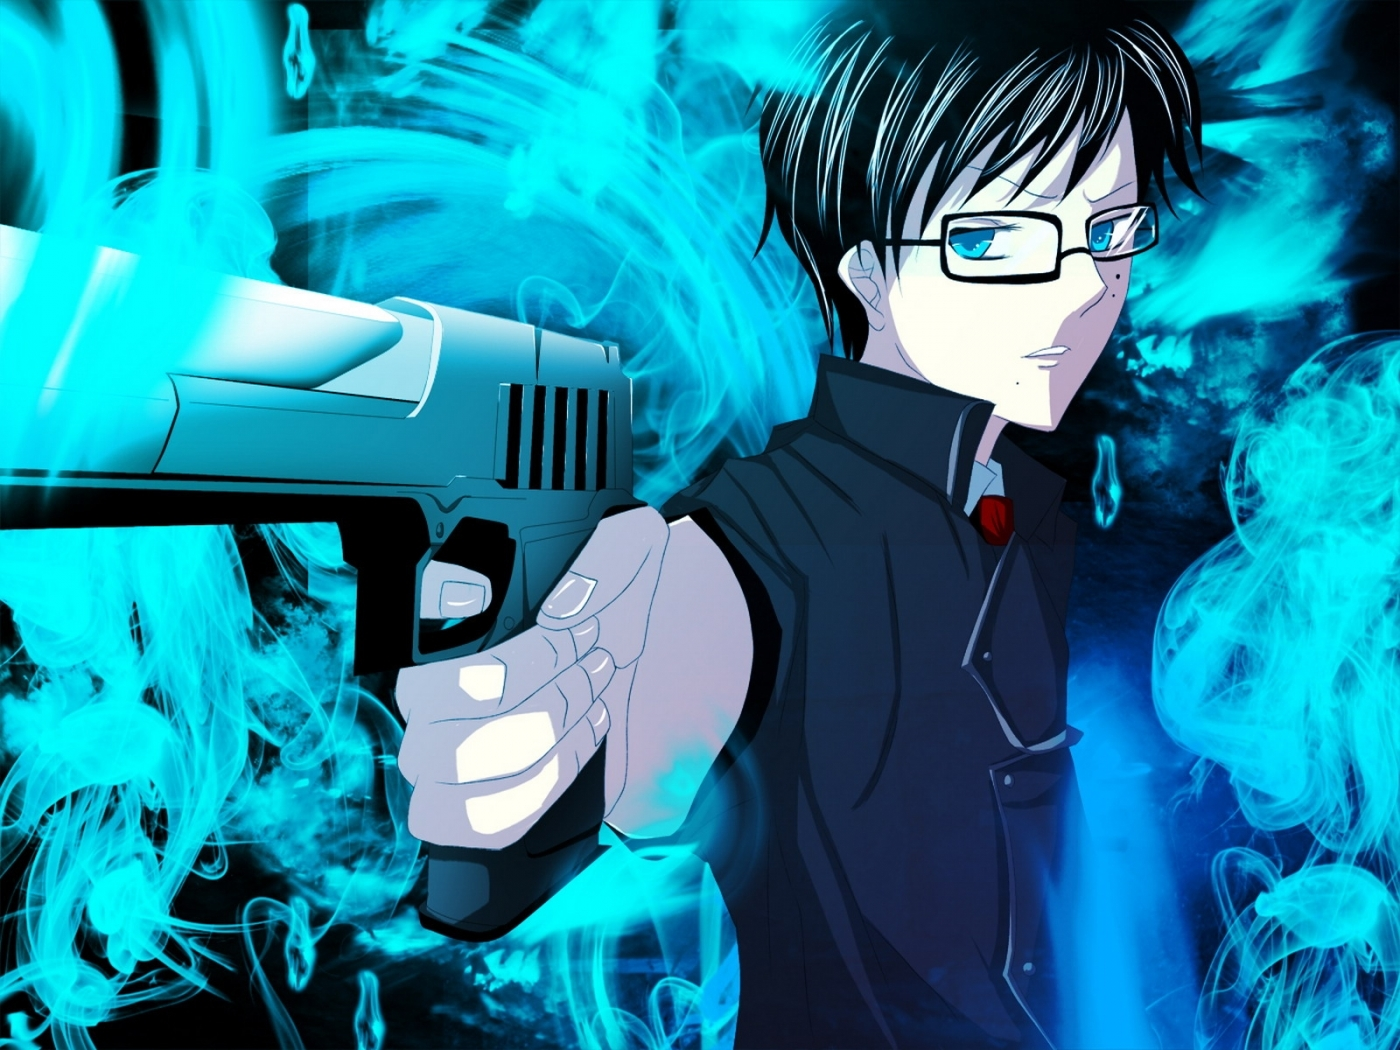 29524 download wallpaper Anime, Men screensavers and pictures for free